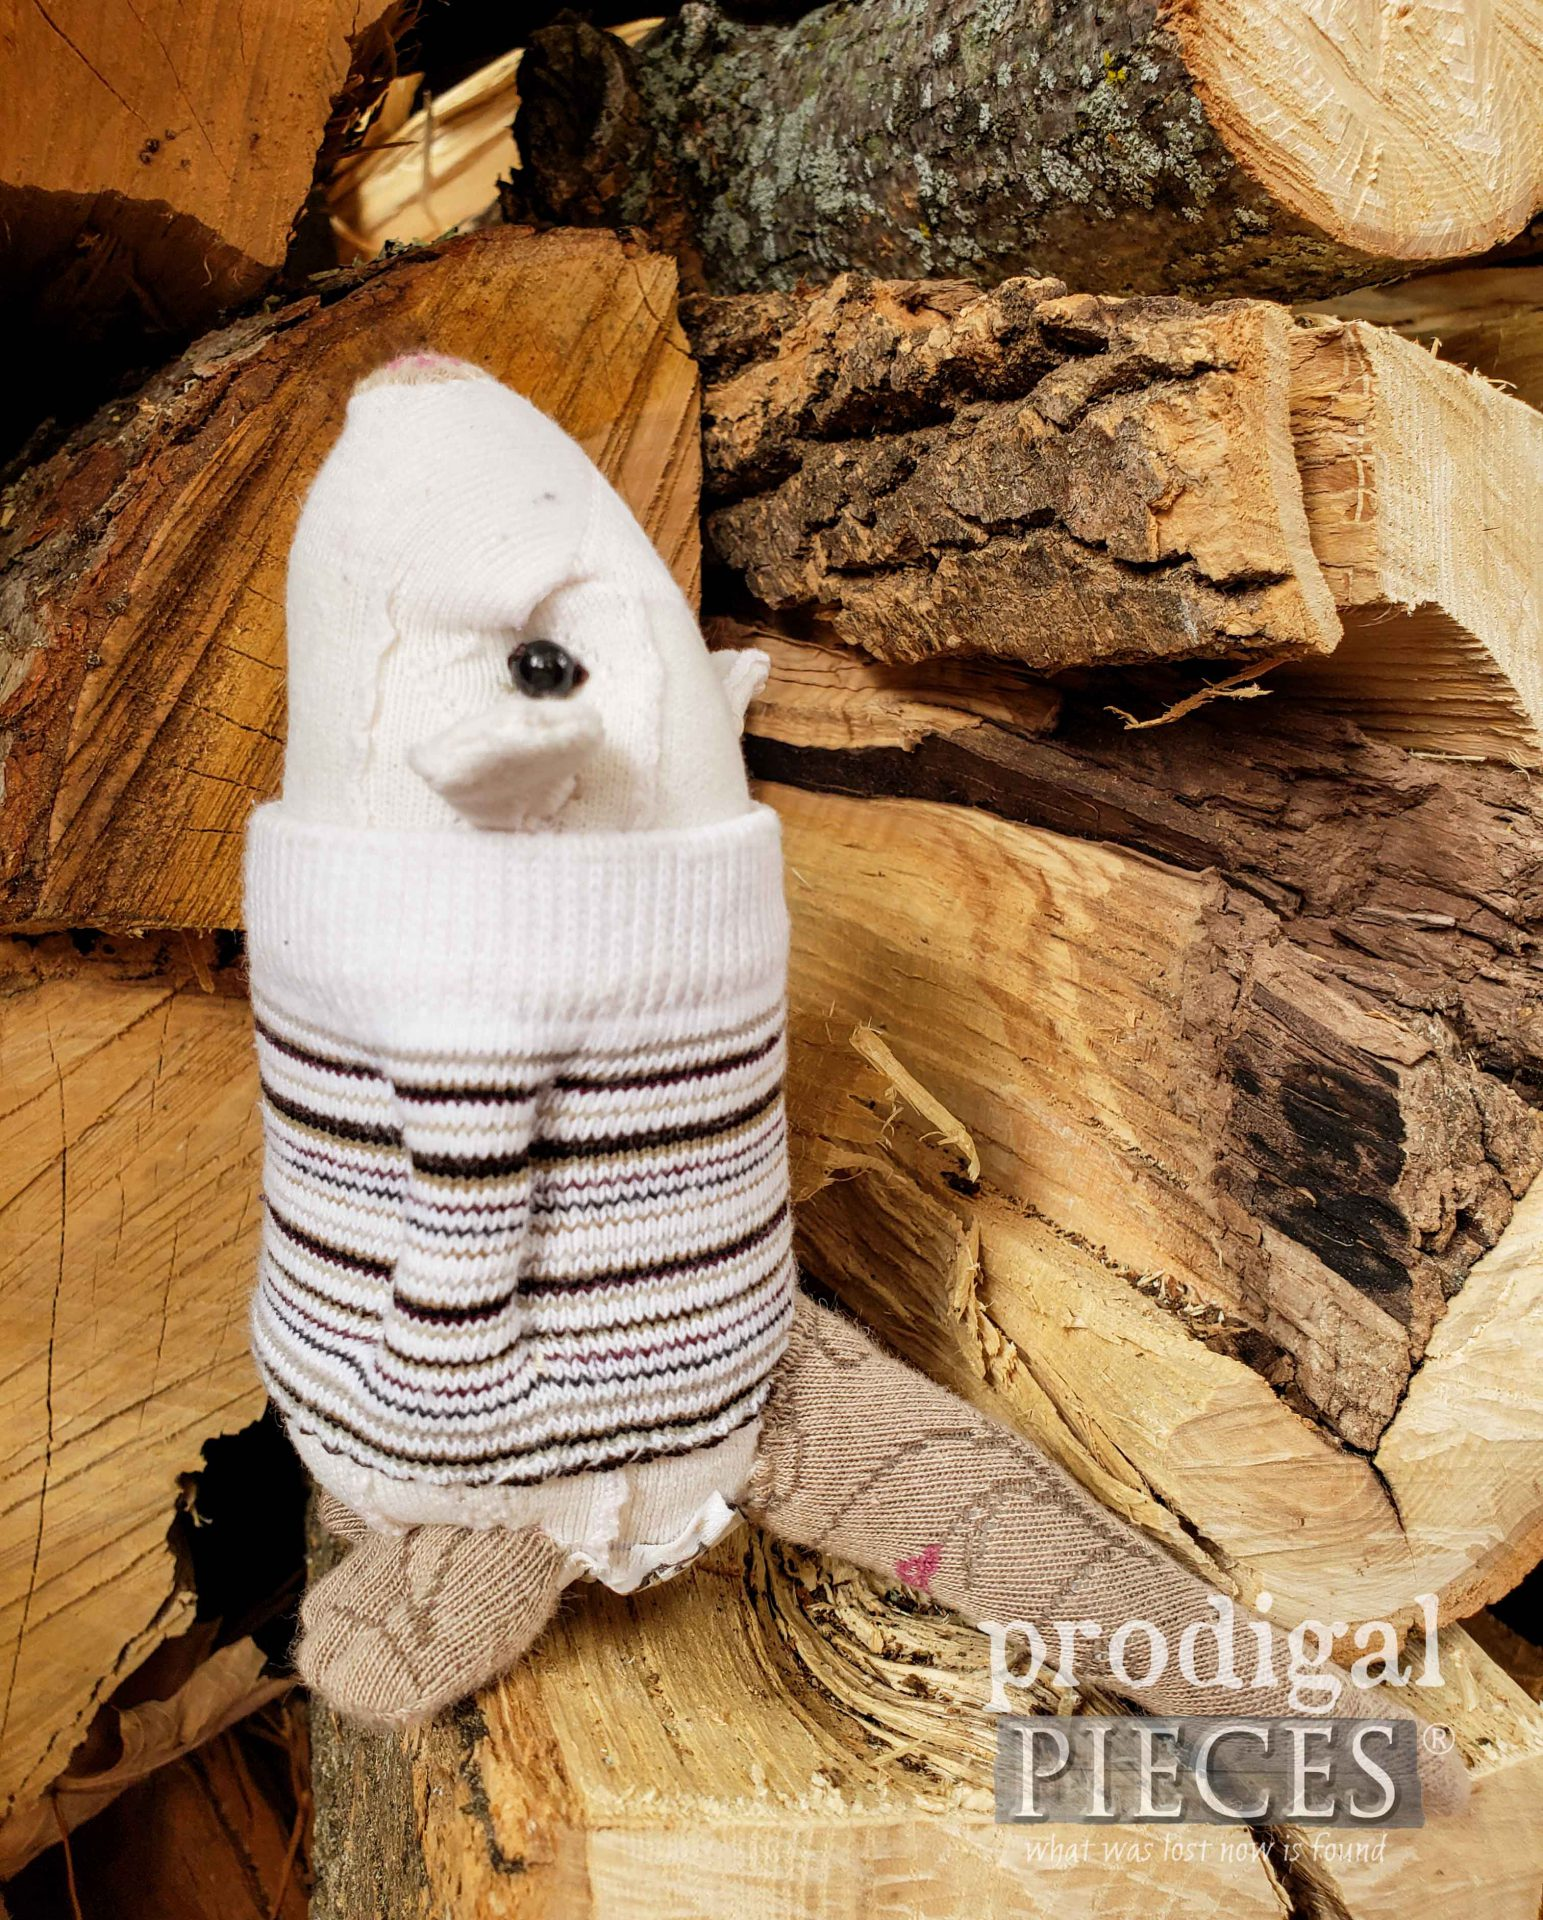 Adorably Small Handmade Sock Mouse Created by Larissa of Prodigal Pieces | prodigalpieces.com #prodigalpieces #handmade #upcycled #doll #toy #kids #sewing